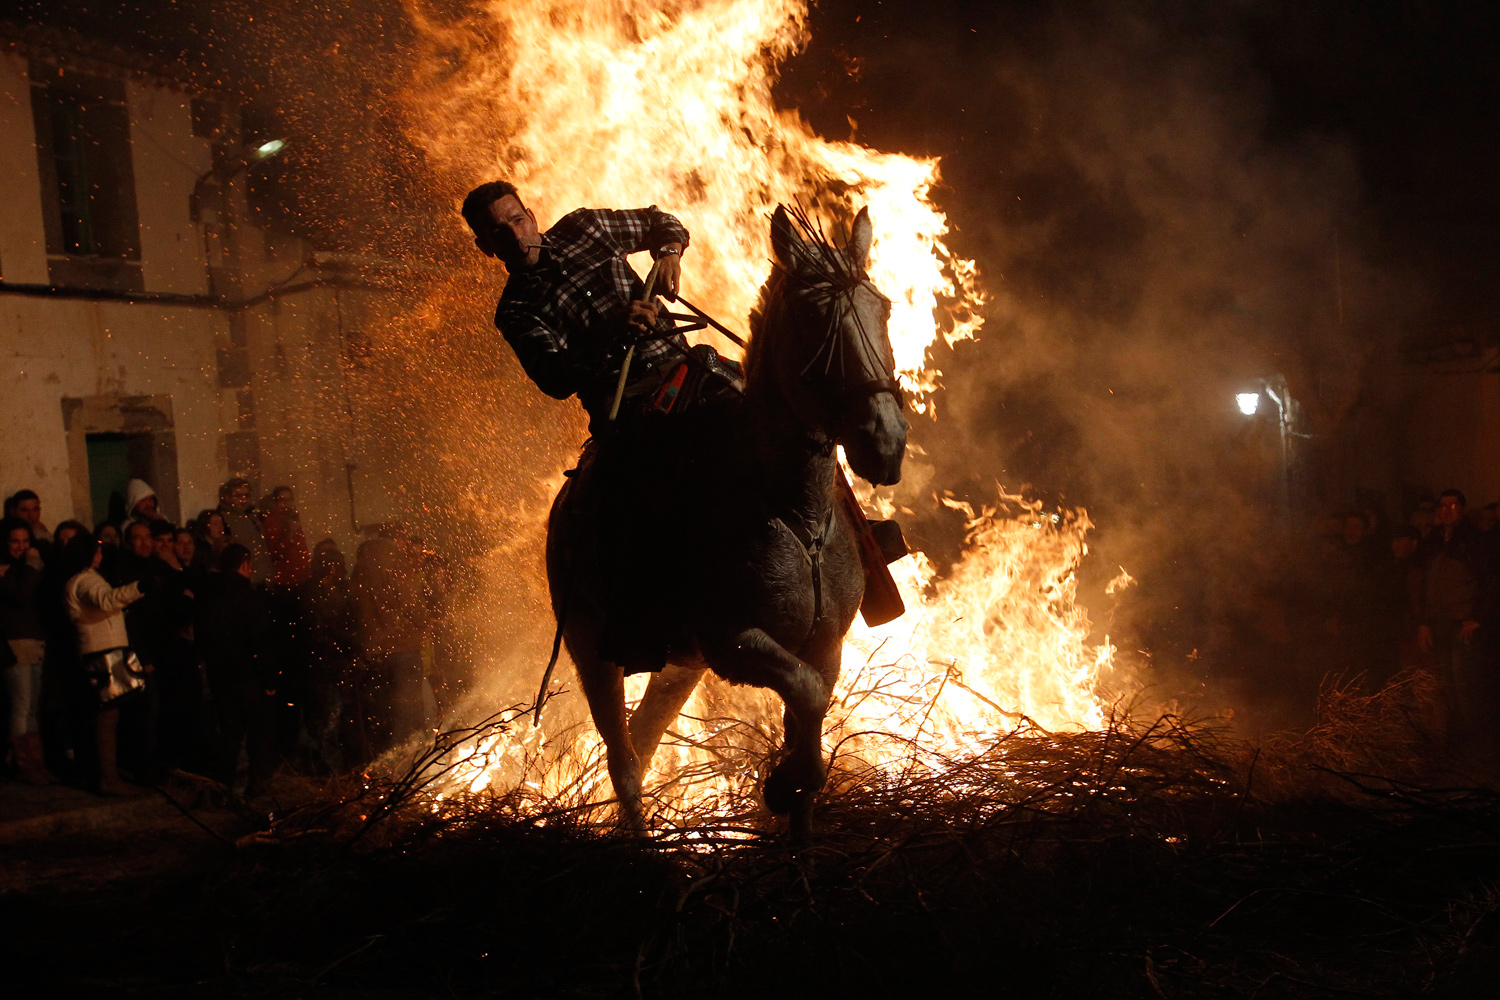 January 16, 2011. A man rides his horse through flames during the  Luminarias  annual religious celebration in the Spanish village of San Bartolome de los Pinares.